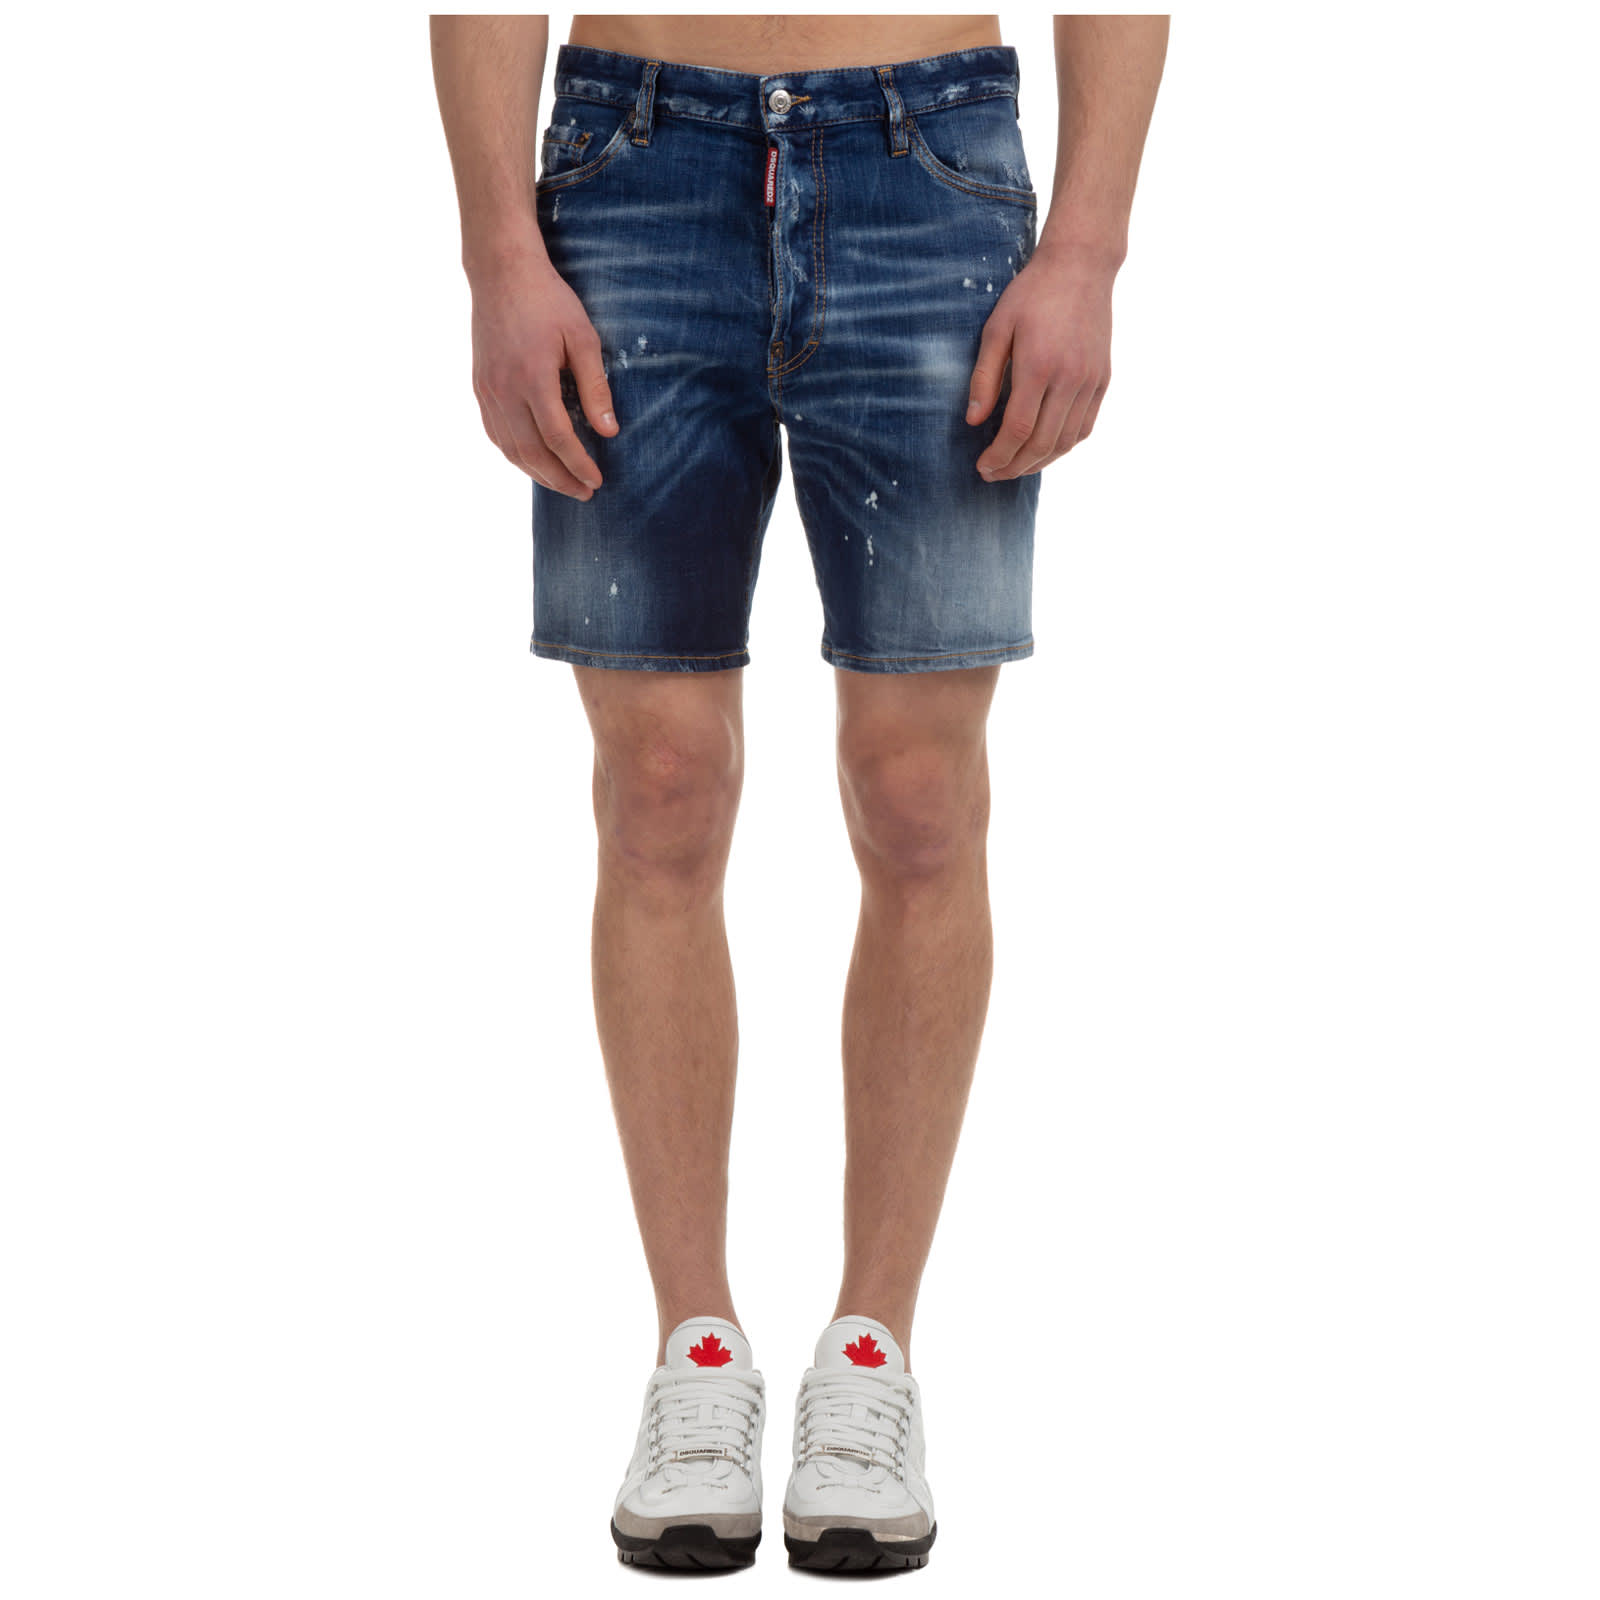 Dsquared2 DEAN & DAN CATEN SHORTS